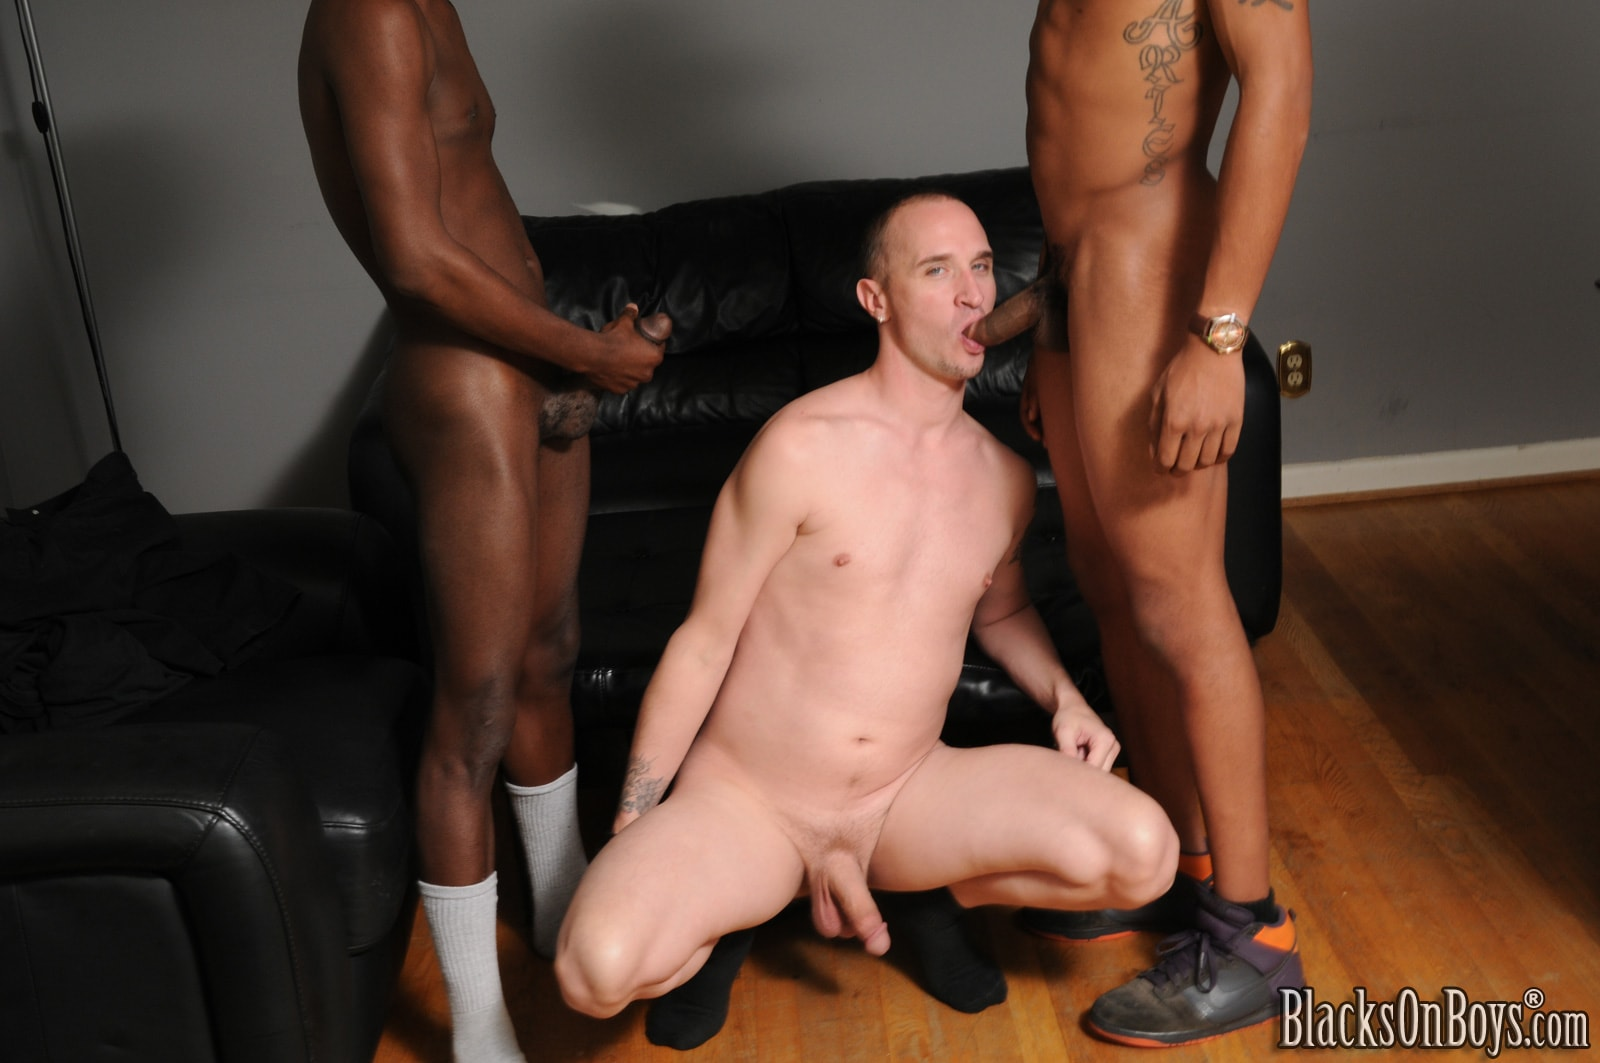 Dogfart Men '- Blacks On Boys' starring Austin (Photo 12)